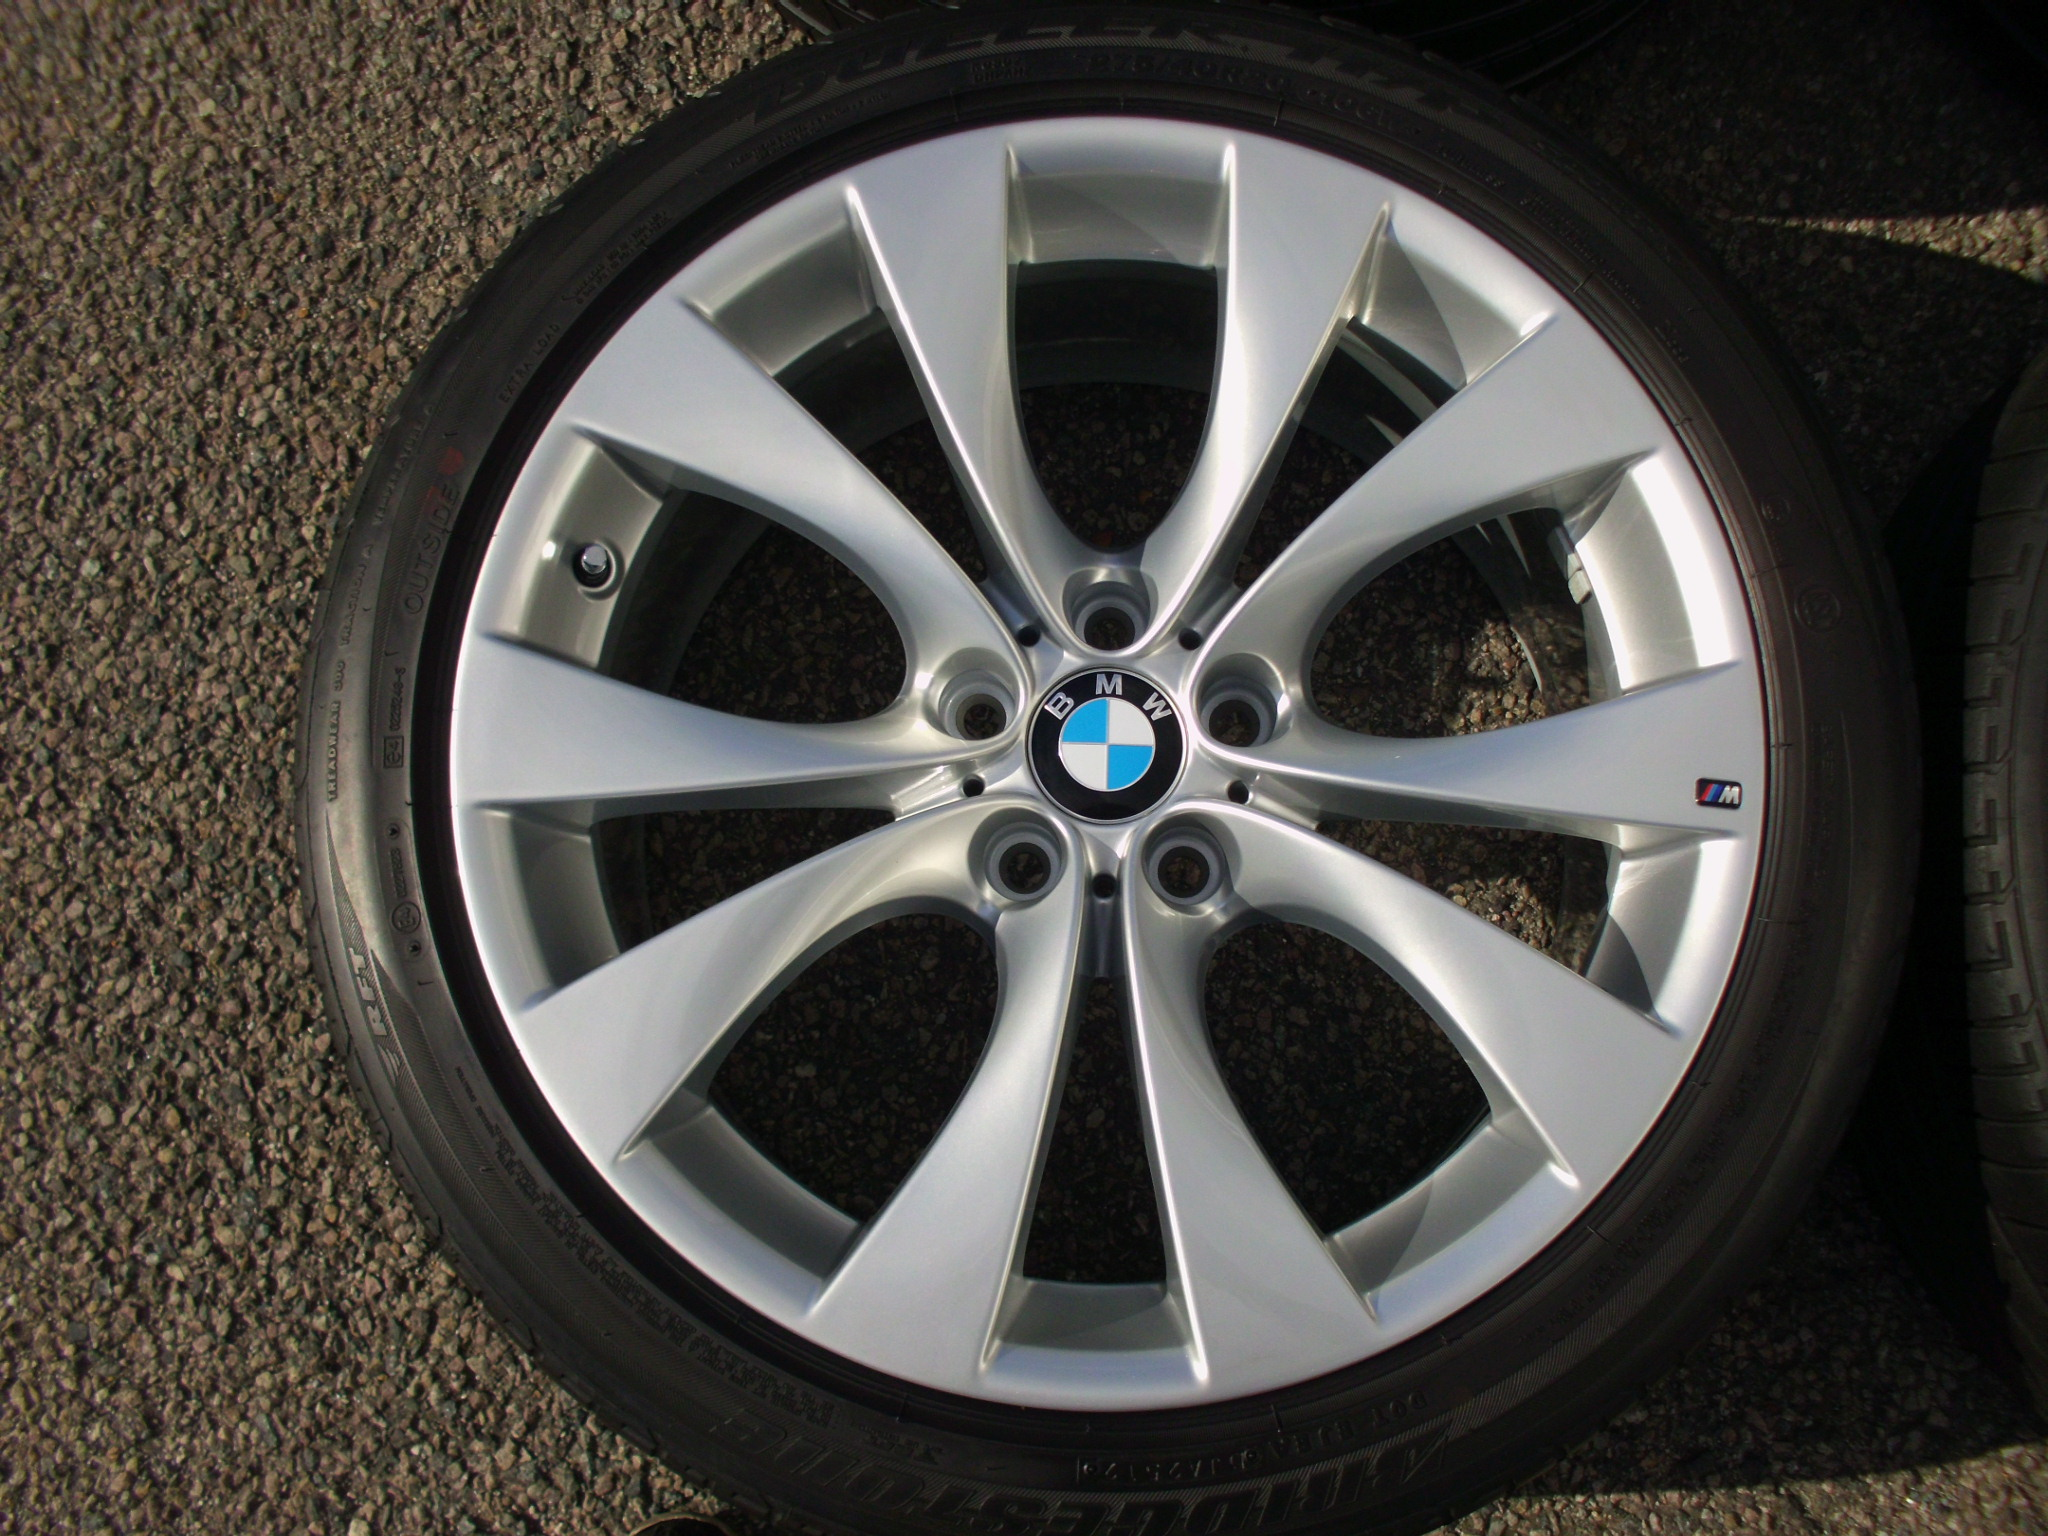 "USED 20"" GENUINE STYLE 227M E70 X5/X6 U SPOKE SPORT ALLOYS, FULLY REFURBED, 11"" REAR, INC GOOD RUNFLAT'S"